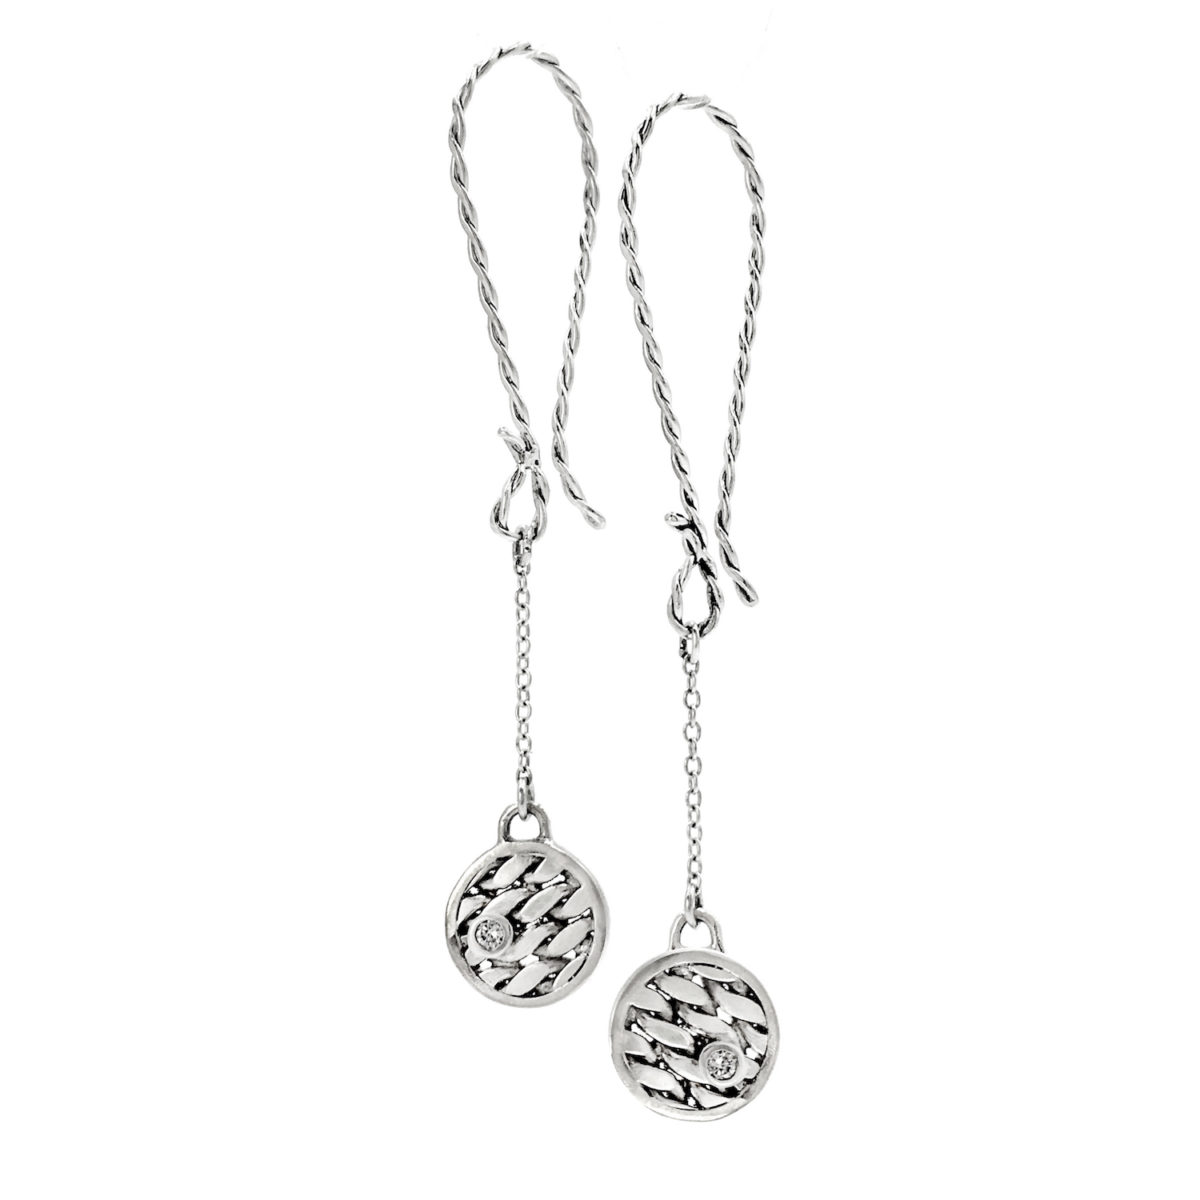 18k white Gold Texture Disc Diamond Elongated Dangle Earrings